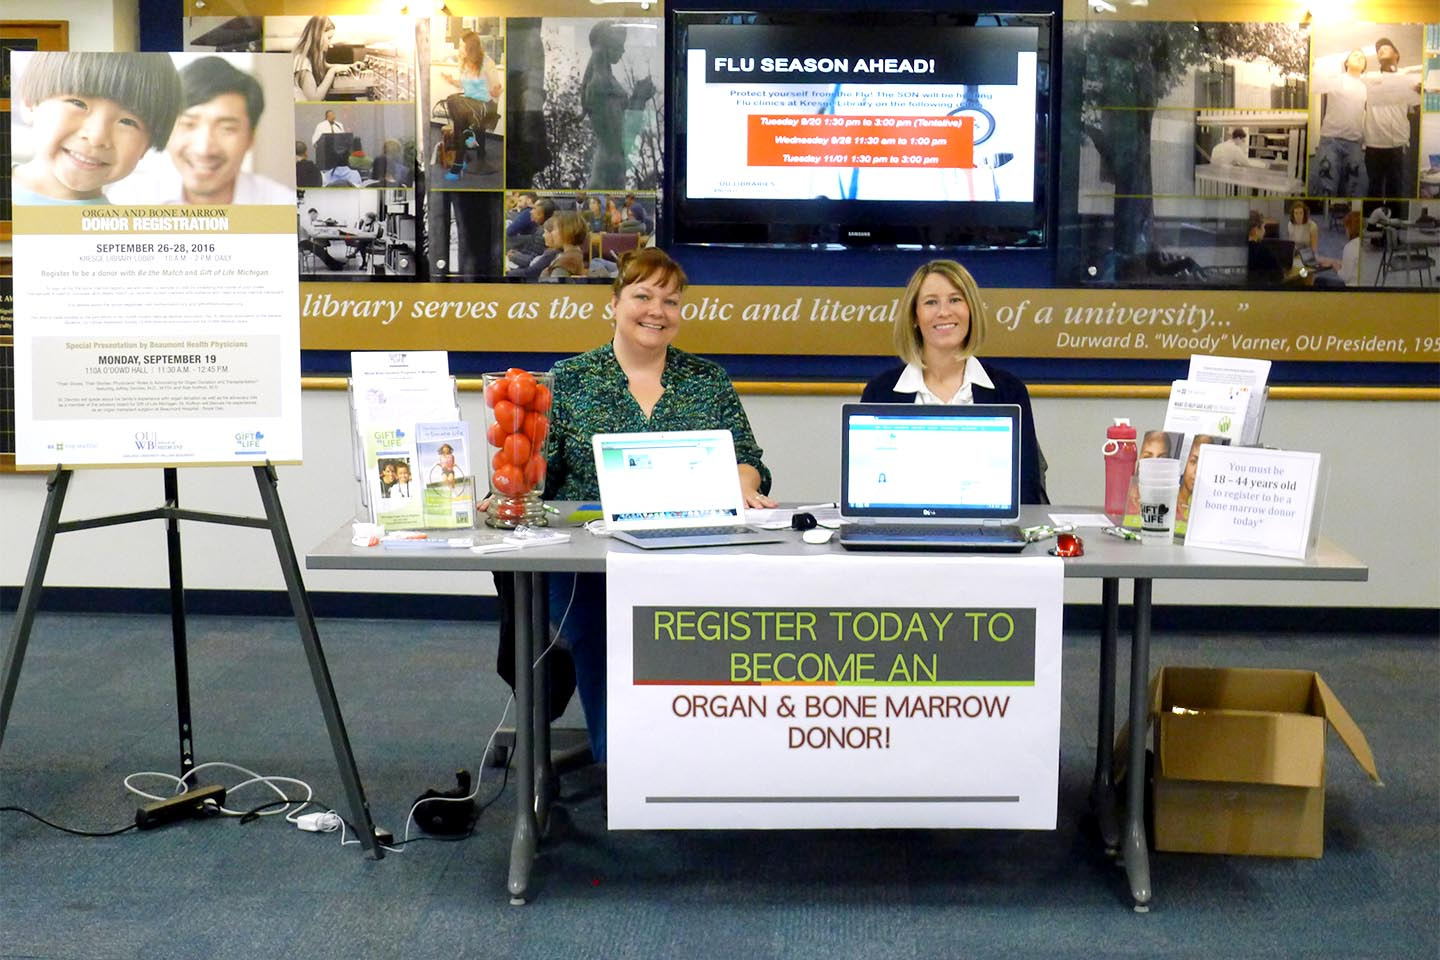 Organ & Bone Marrow Donor Registration Drive